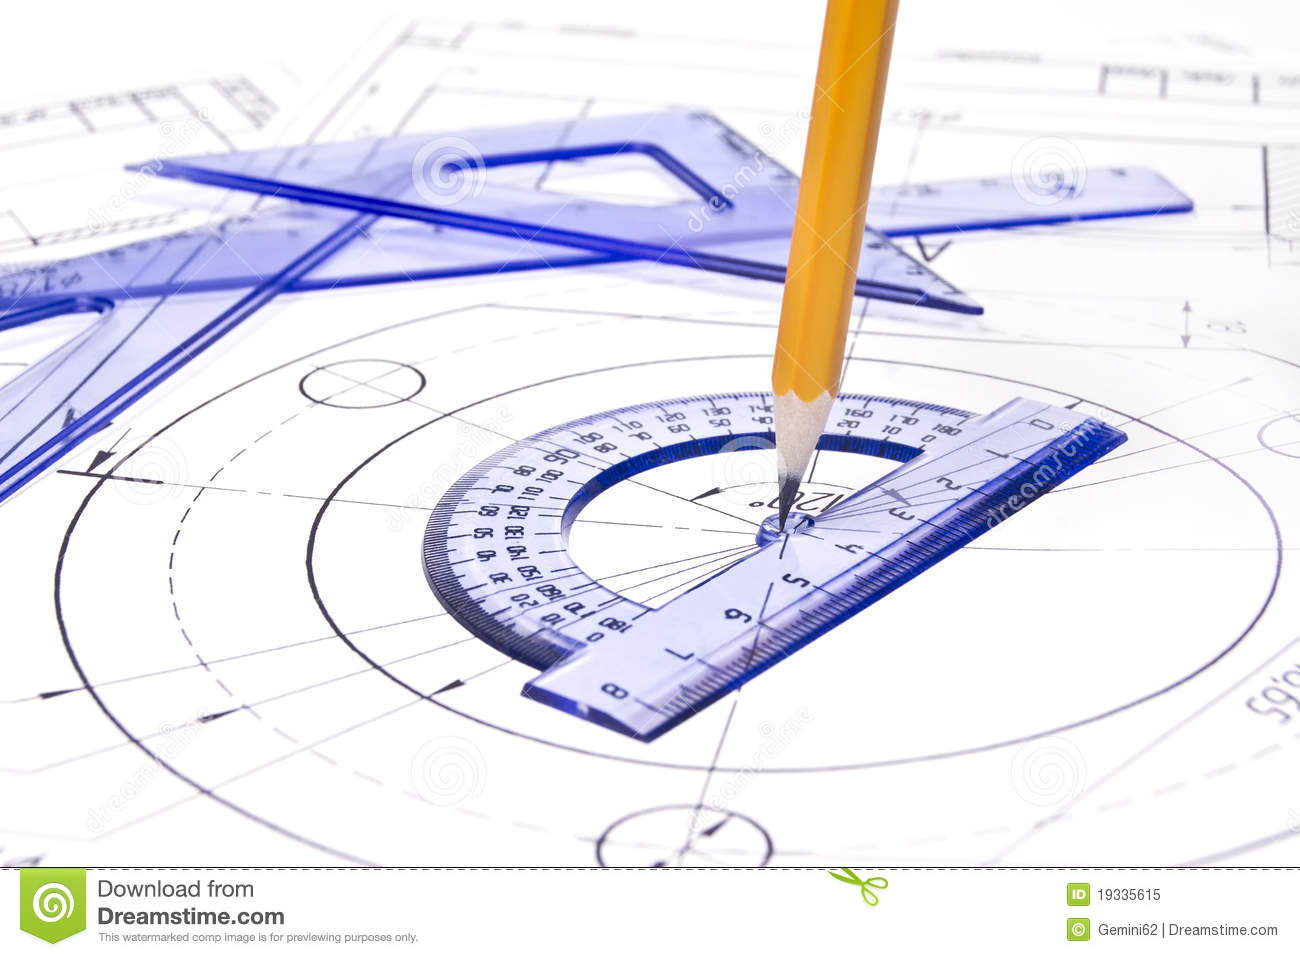 engineering drawing equipment stock image image of print pencil 19335615. Black Bedroom Furniture Sets. Home Design Ideas